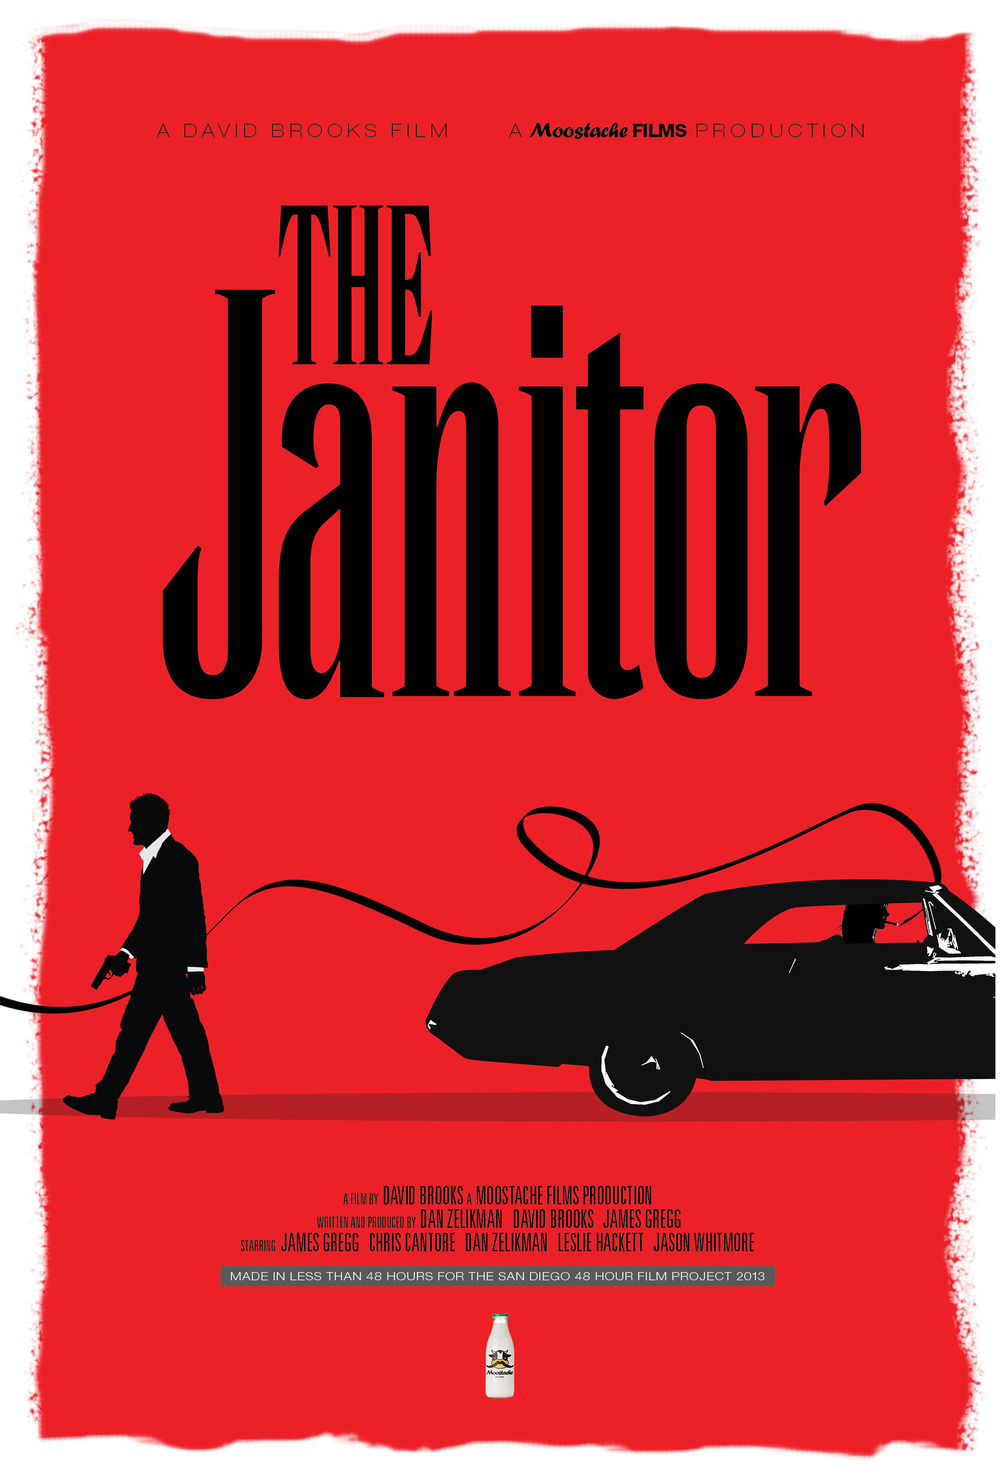 the_janitor_one_sheet_WEB_(1).jpg